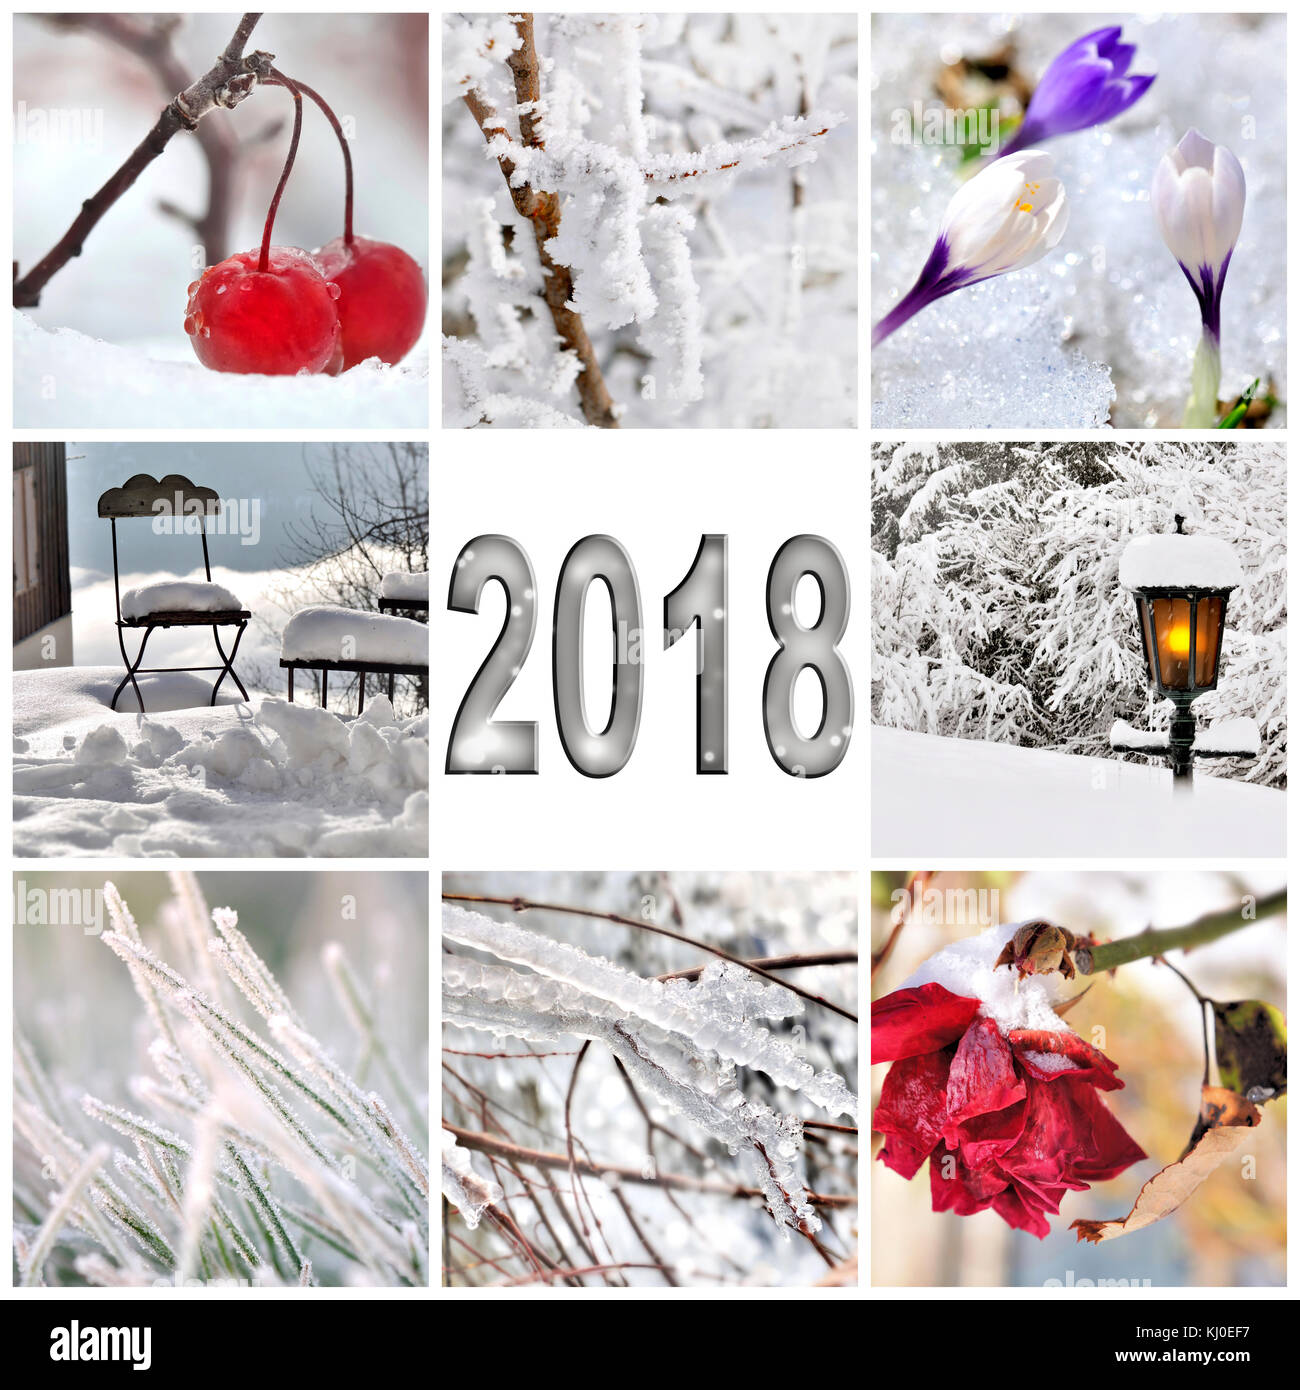 2018 greeting card with collage of the garden in winter stock photo 2018 greeting card with collage of the garden in winter kristyandbryce Image collections